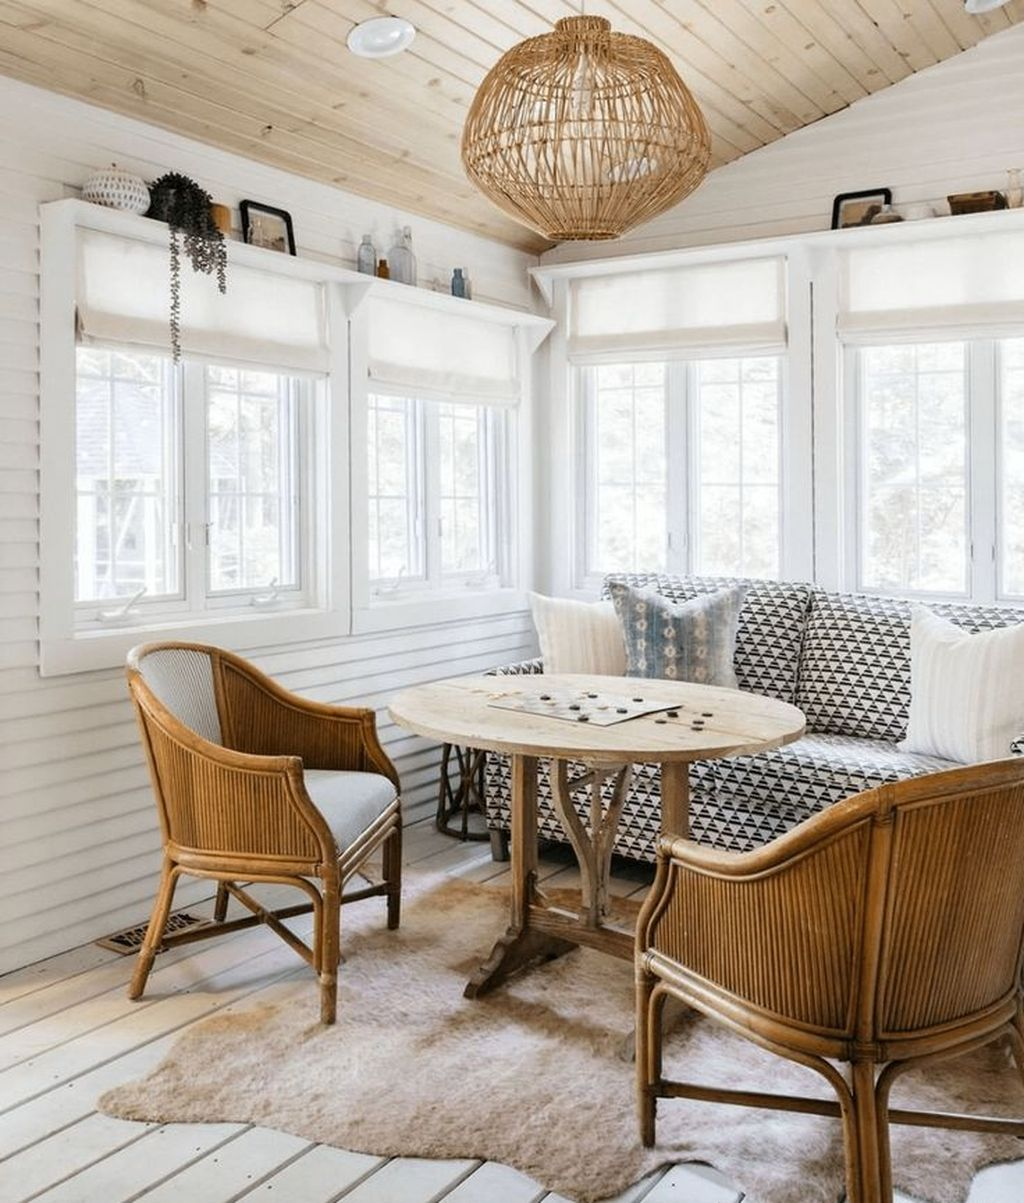 Admirable Sunroom Design Ideas You Must Have 16